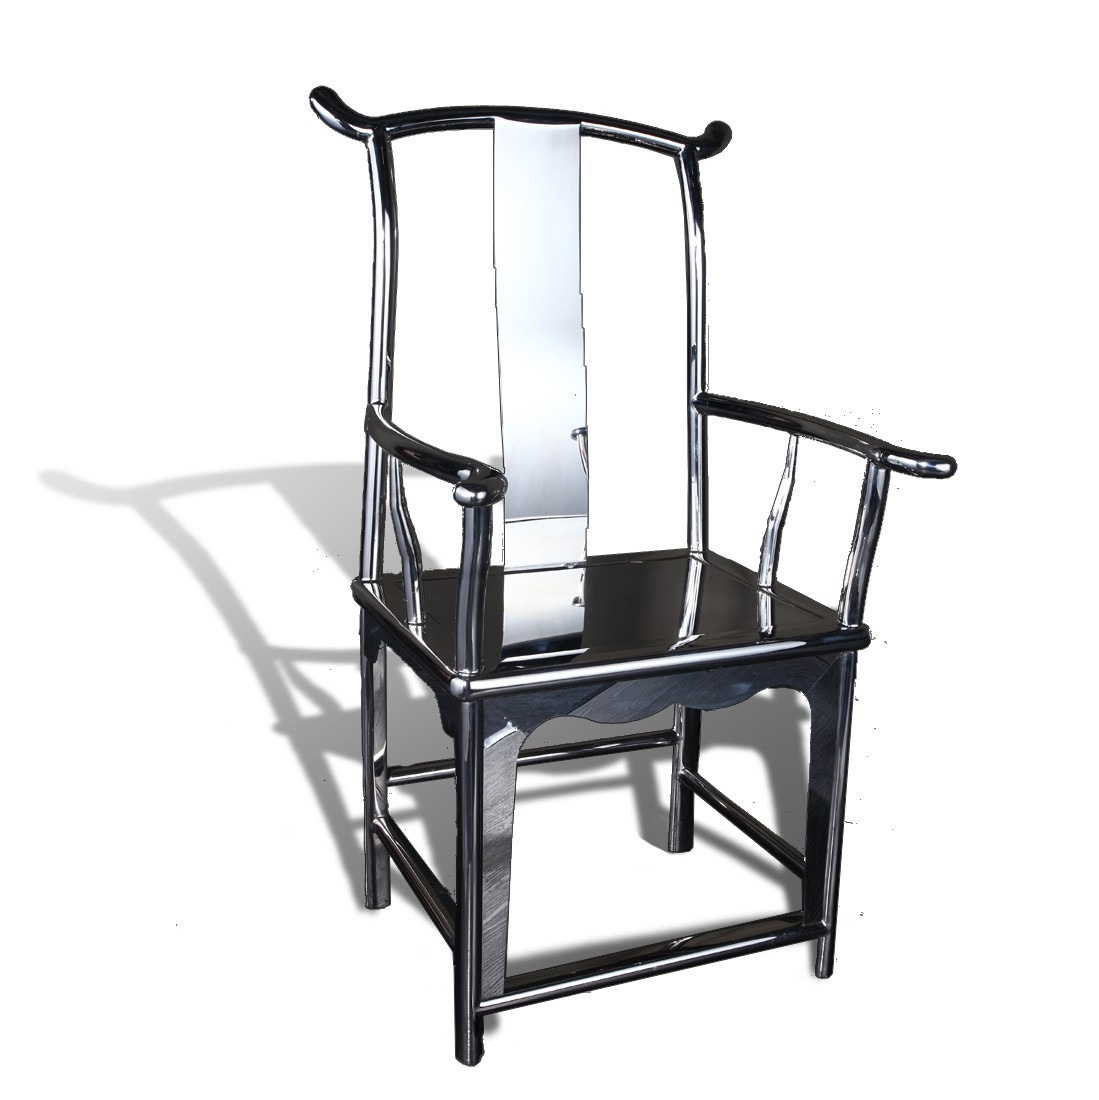 Magnificent Stainless Steel Chinese Officals Hat Chair Gmtry Best Dining Table And Chair Ideas Images Gmtryco